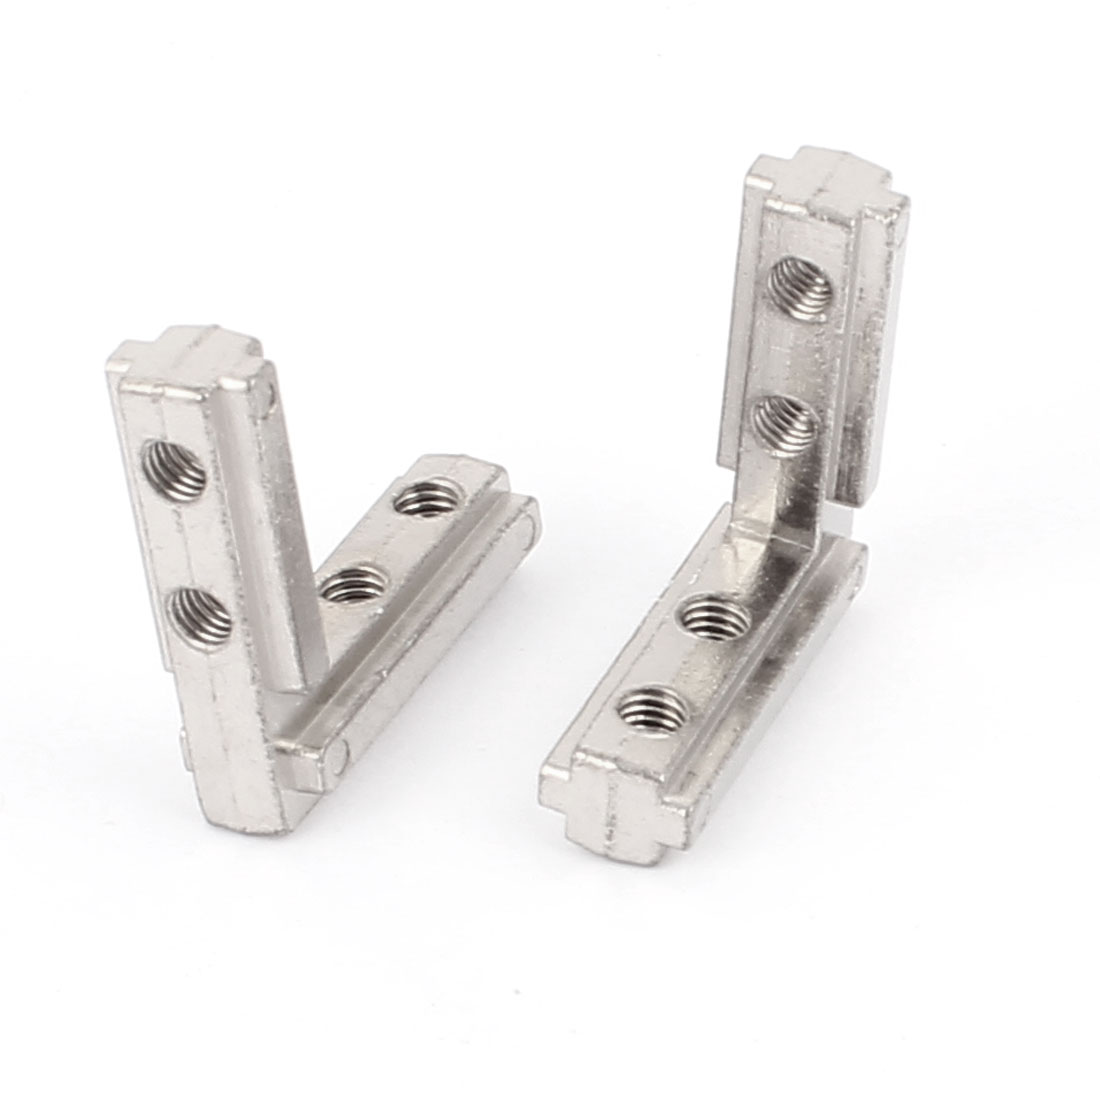 40mm x 40mm T Slot Right Angle Bracket Connector Silver Tone 2pcs